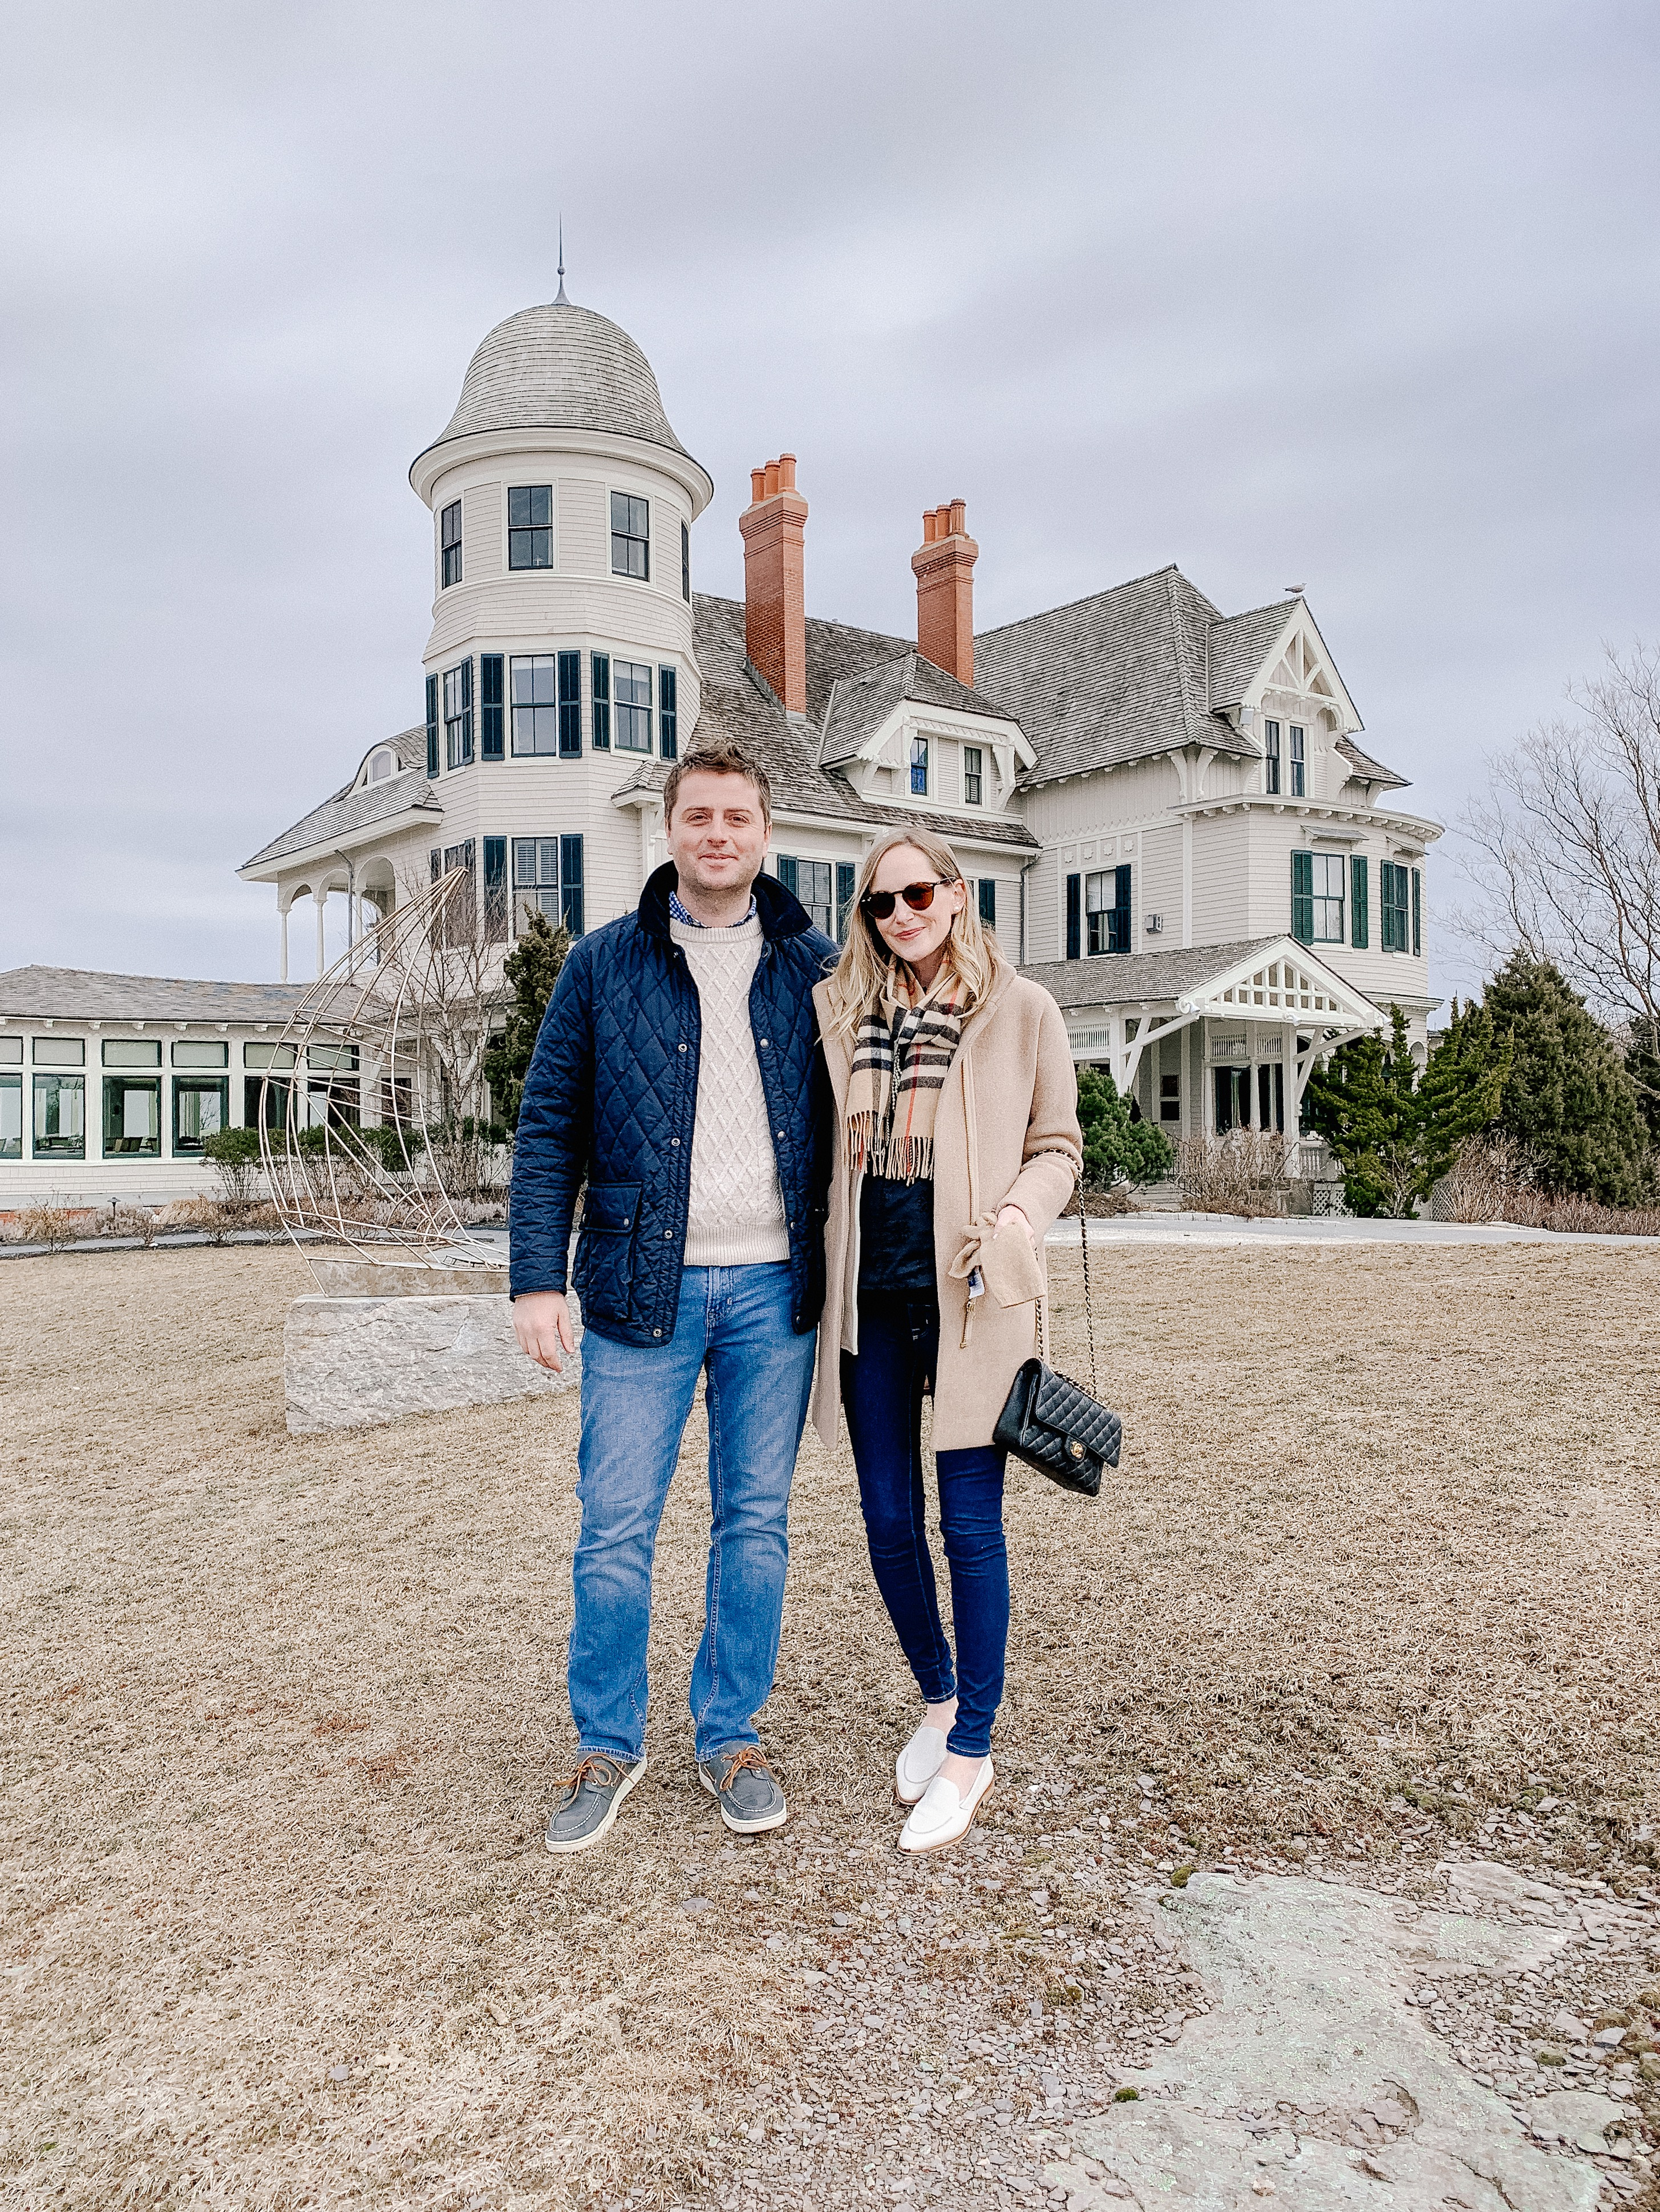 Mitch and Kelly - Newport, Rhode Island - Lunch at Castle Hill Inn